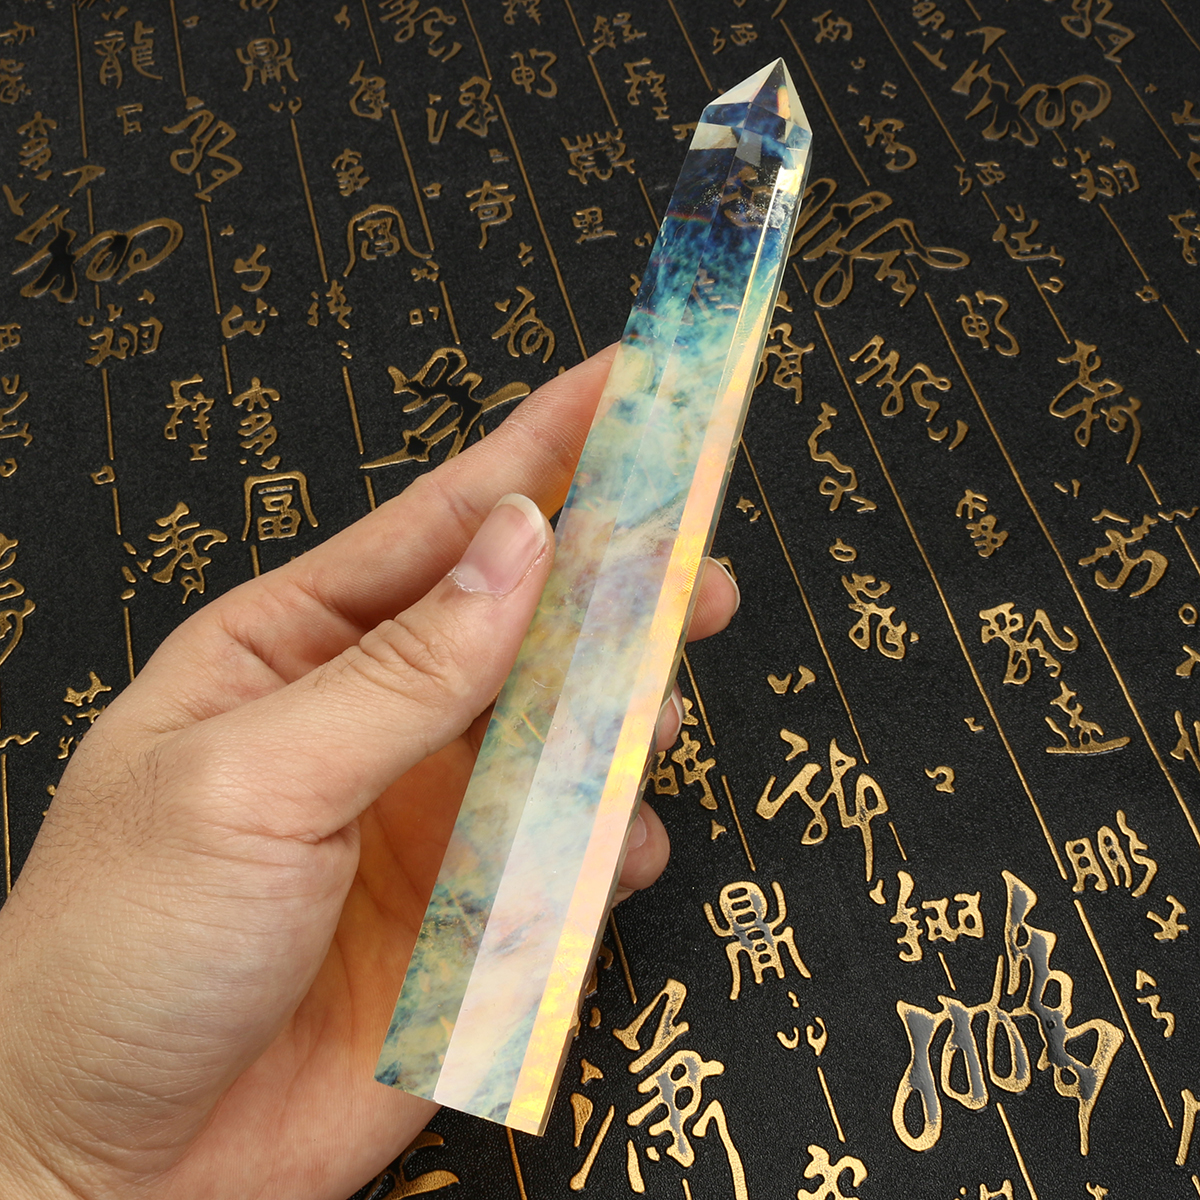 200mm Natural Asian Rare Citrine Quartz Crystal Hexagonal Wand Point Healing Decorations Gift